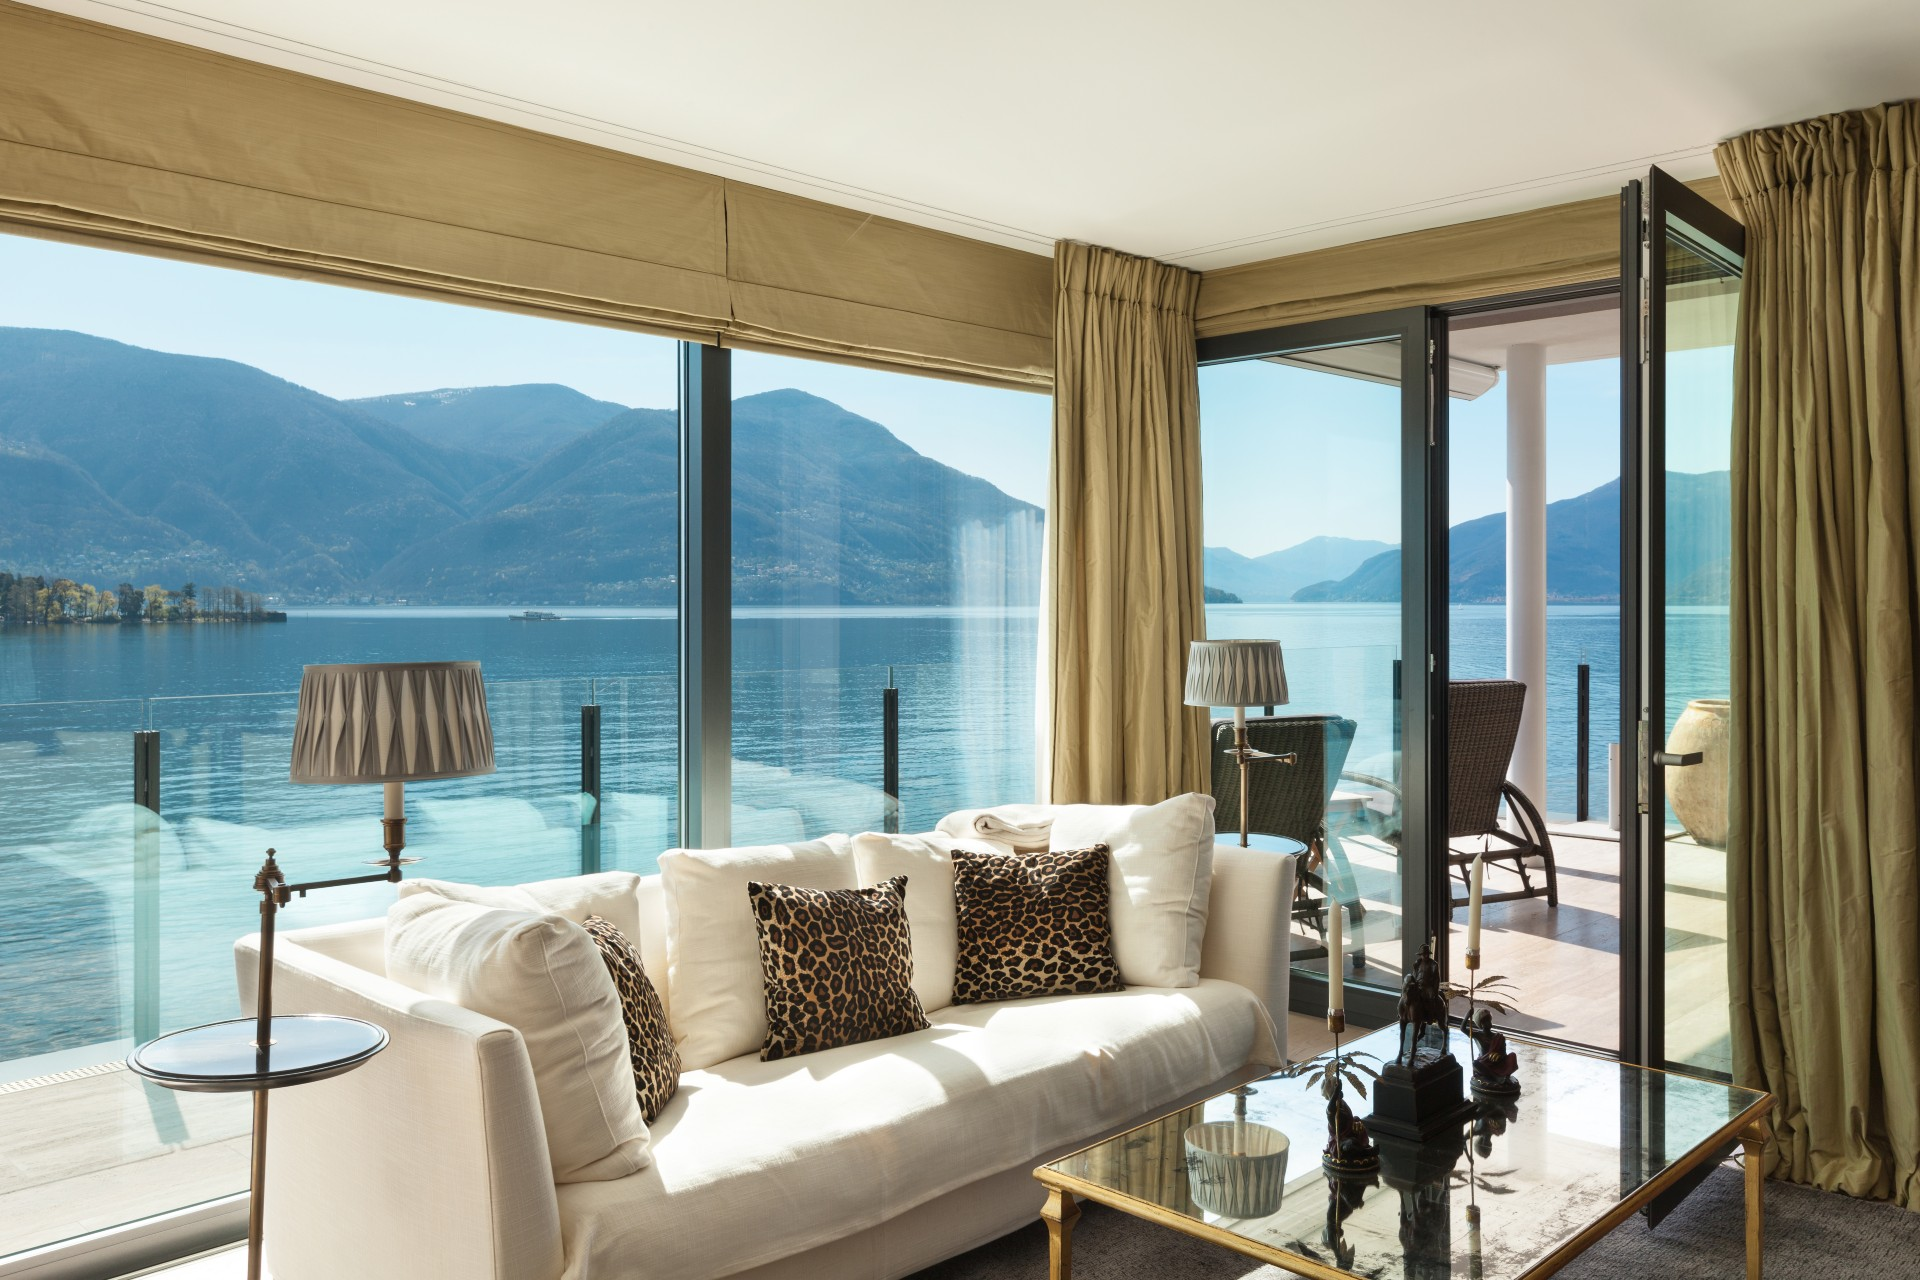 Living room with a nice view of lake